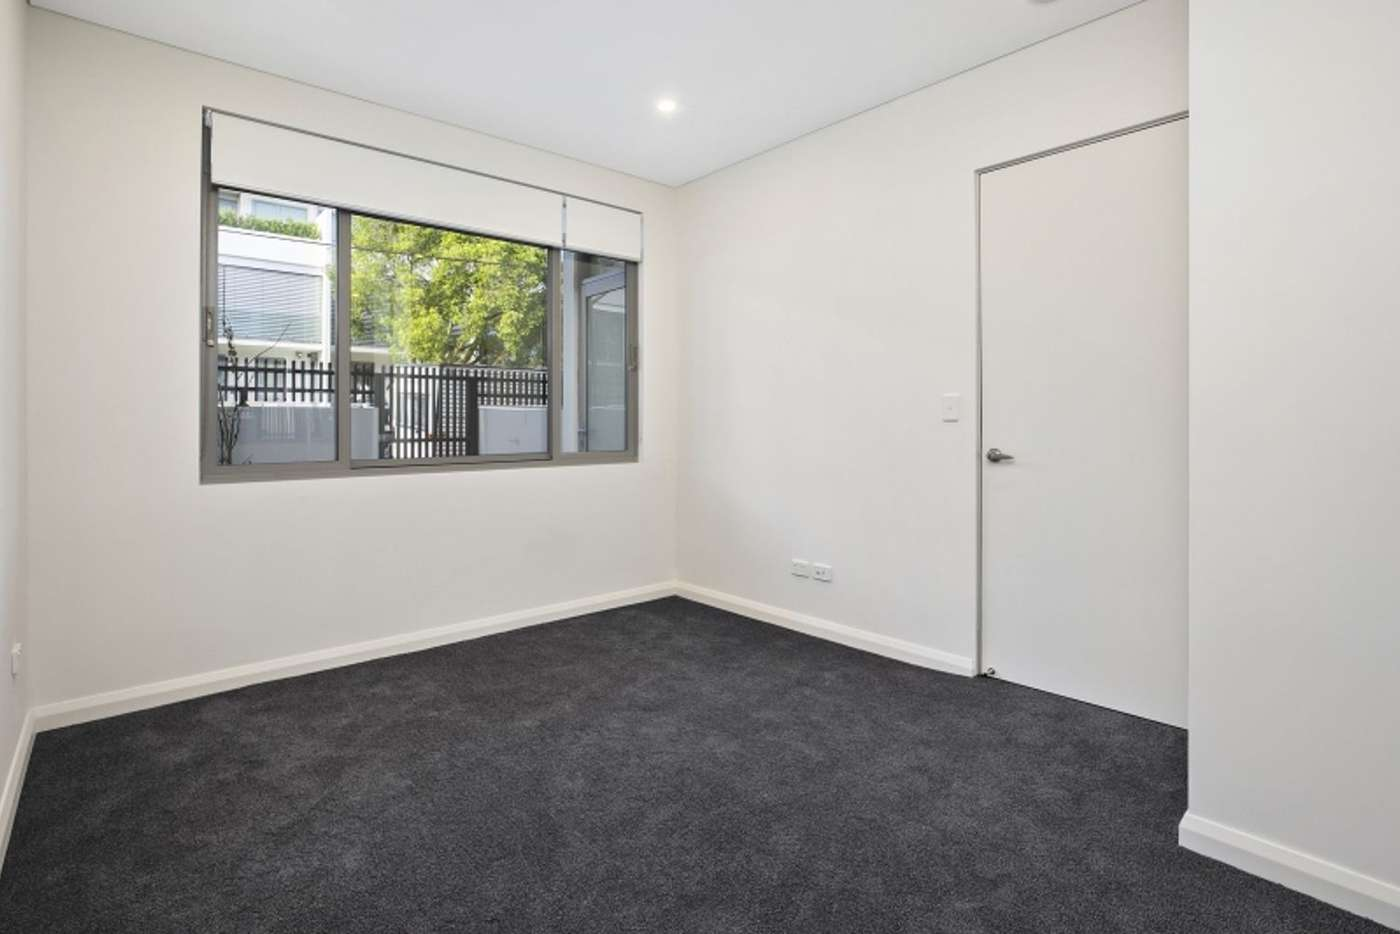 Seventh view of Homely apartment listing, 21-27 William St, Alexandria NSW 2015